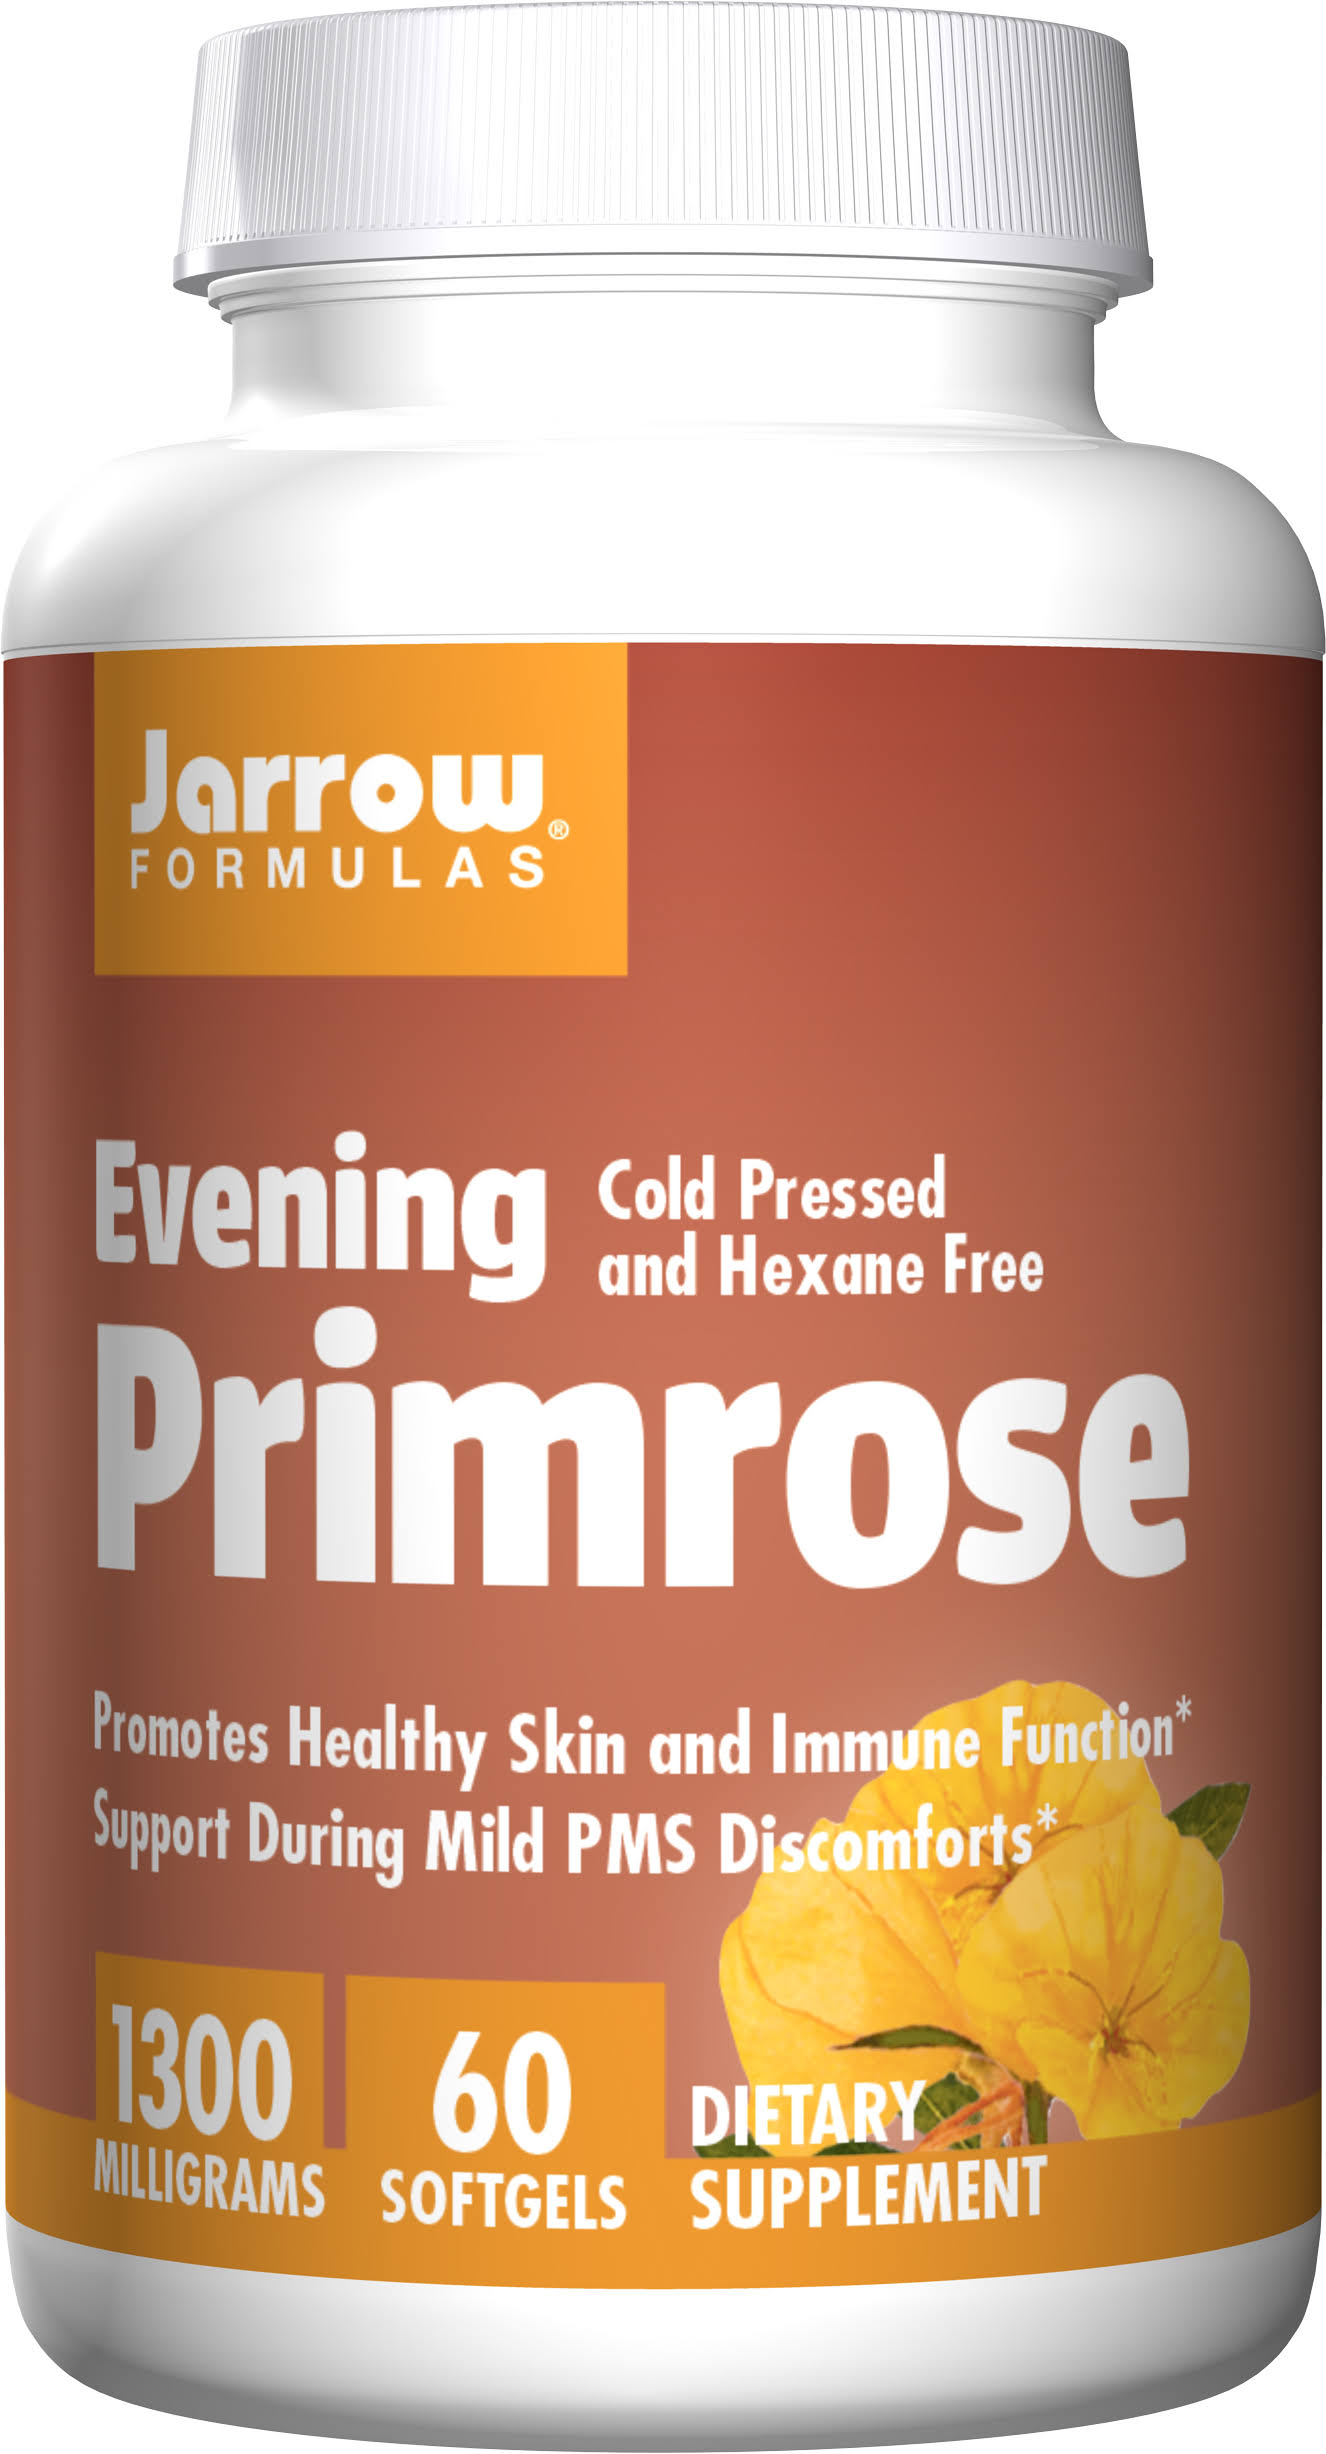 Jarrow Formulas Evening Primrose Oil - 60 Softgels